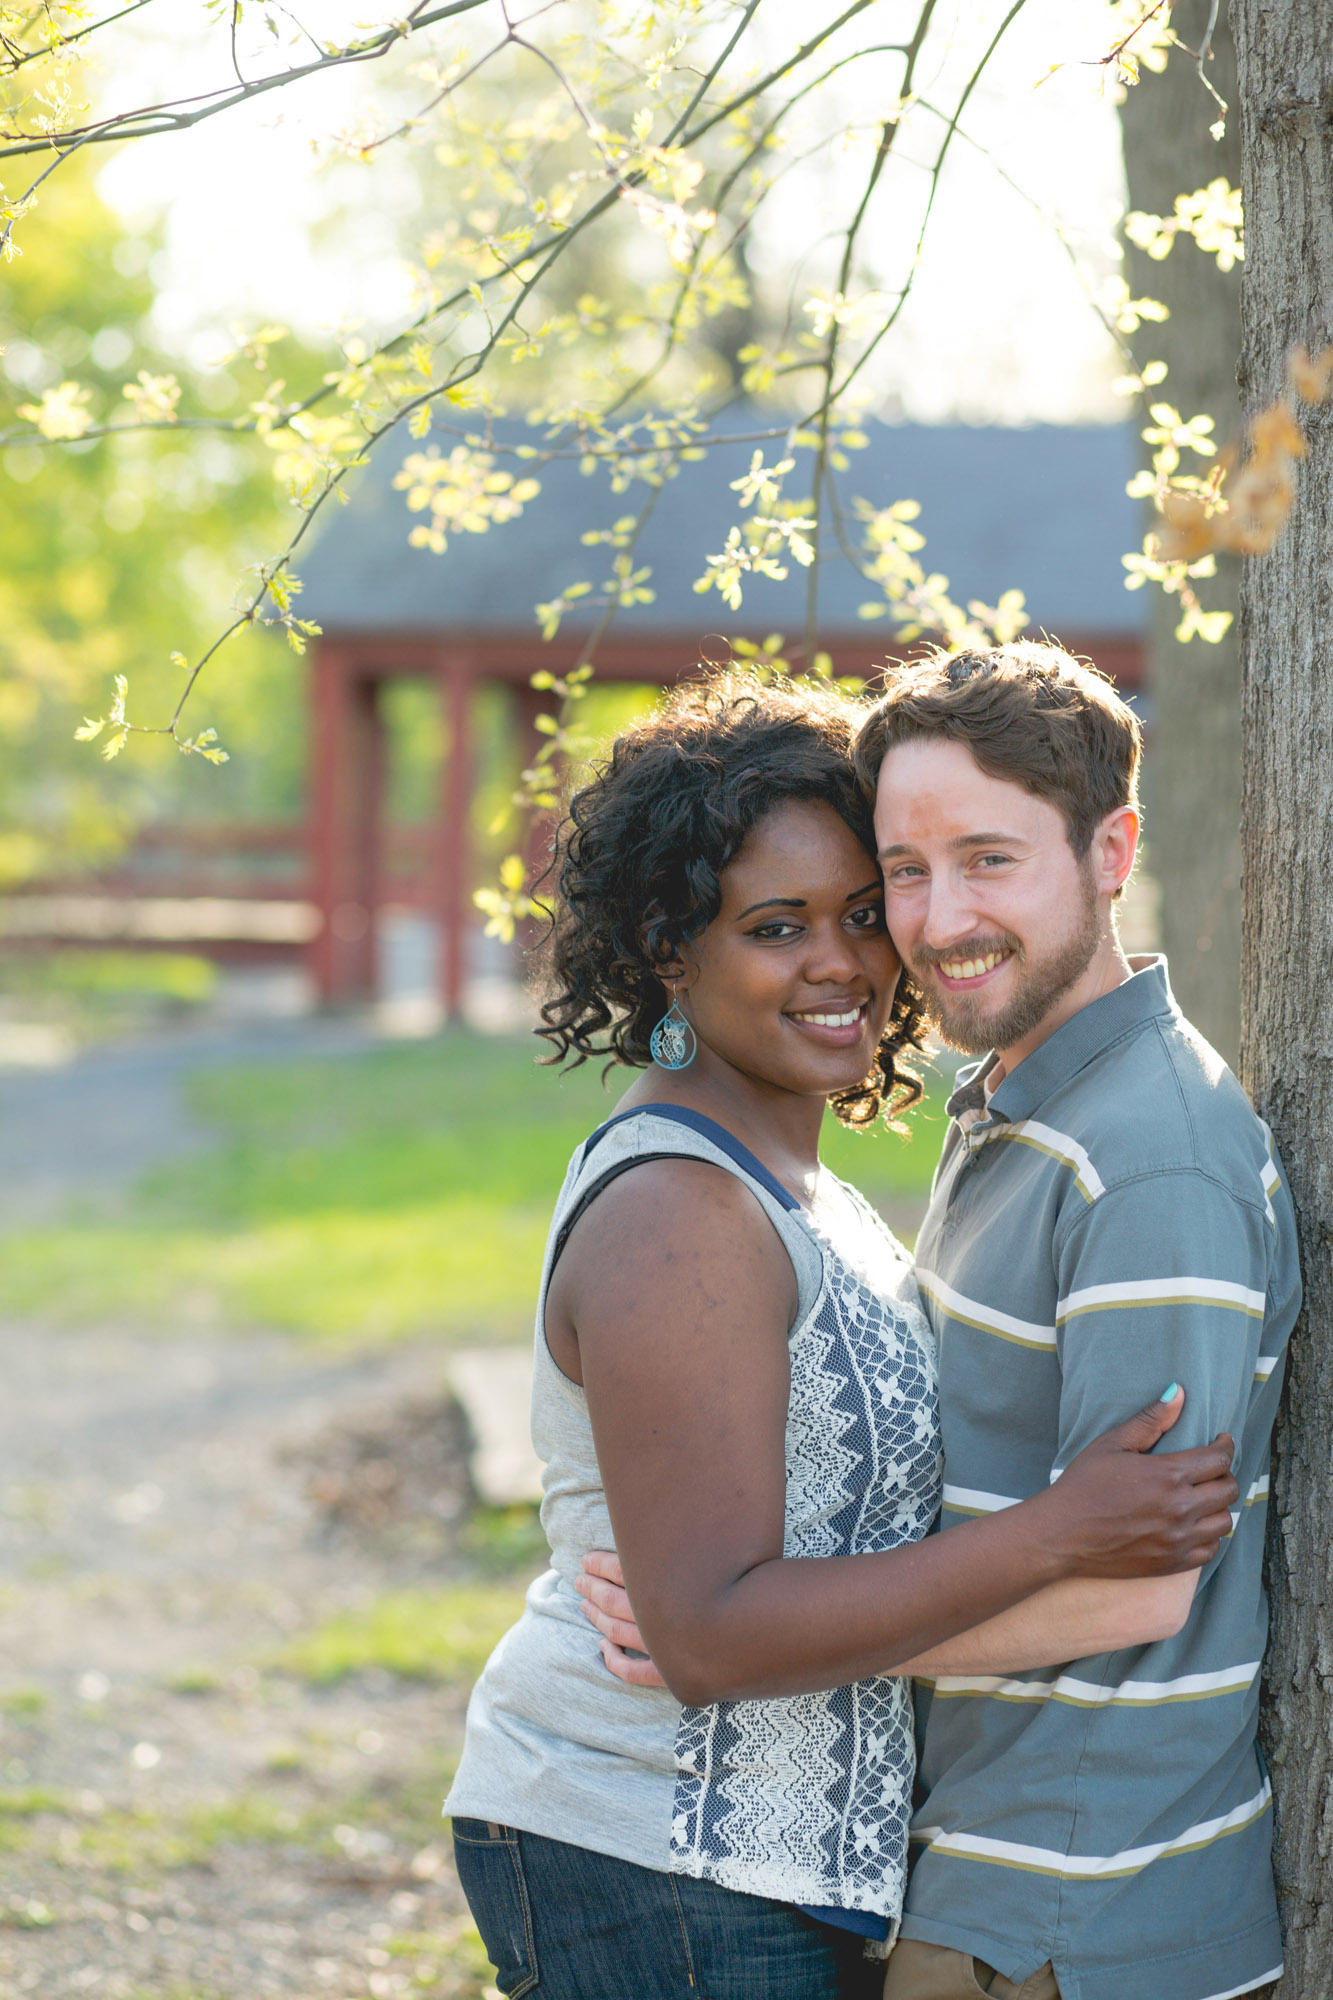 Quakertown Memorial Park Engagement Photos 05